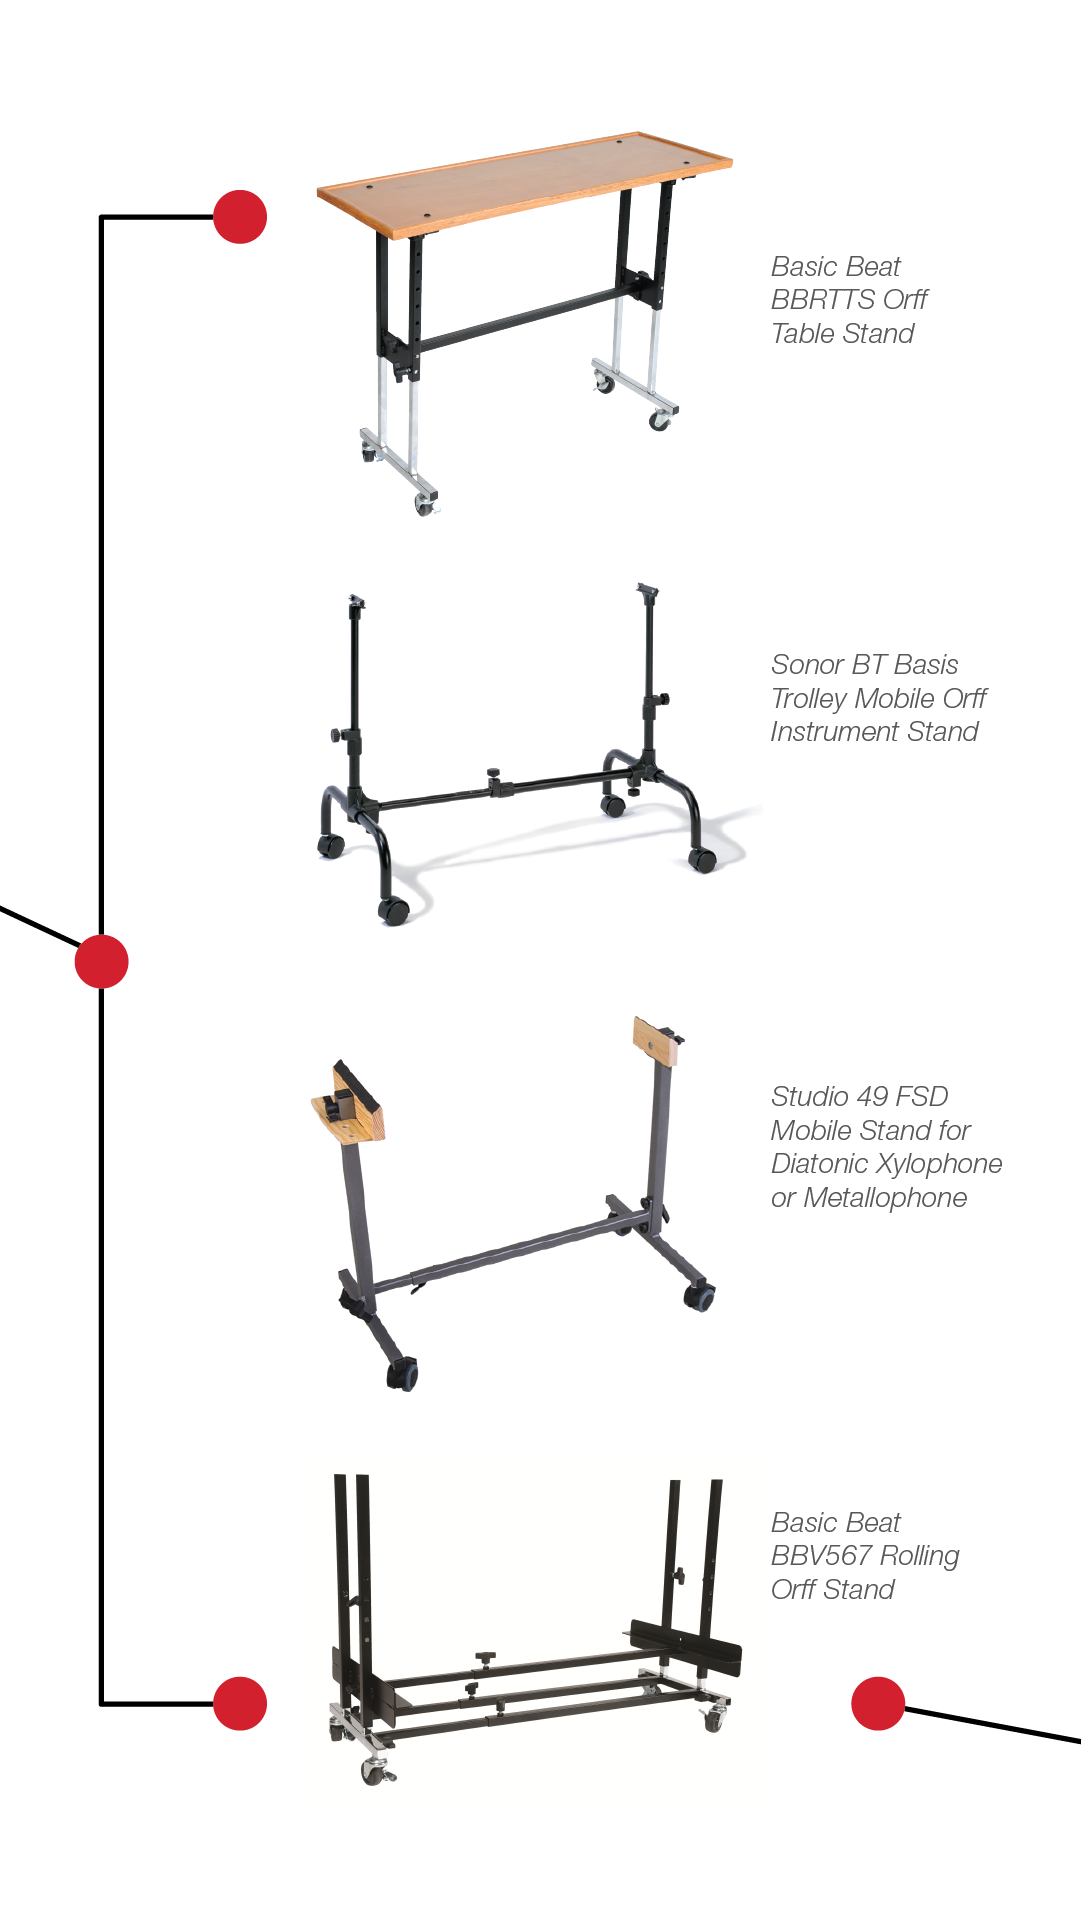 West Music Orff Instrument Stands